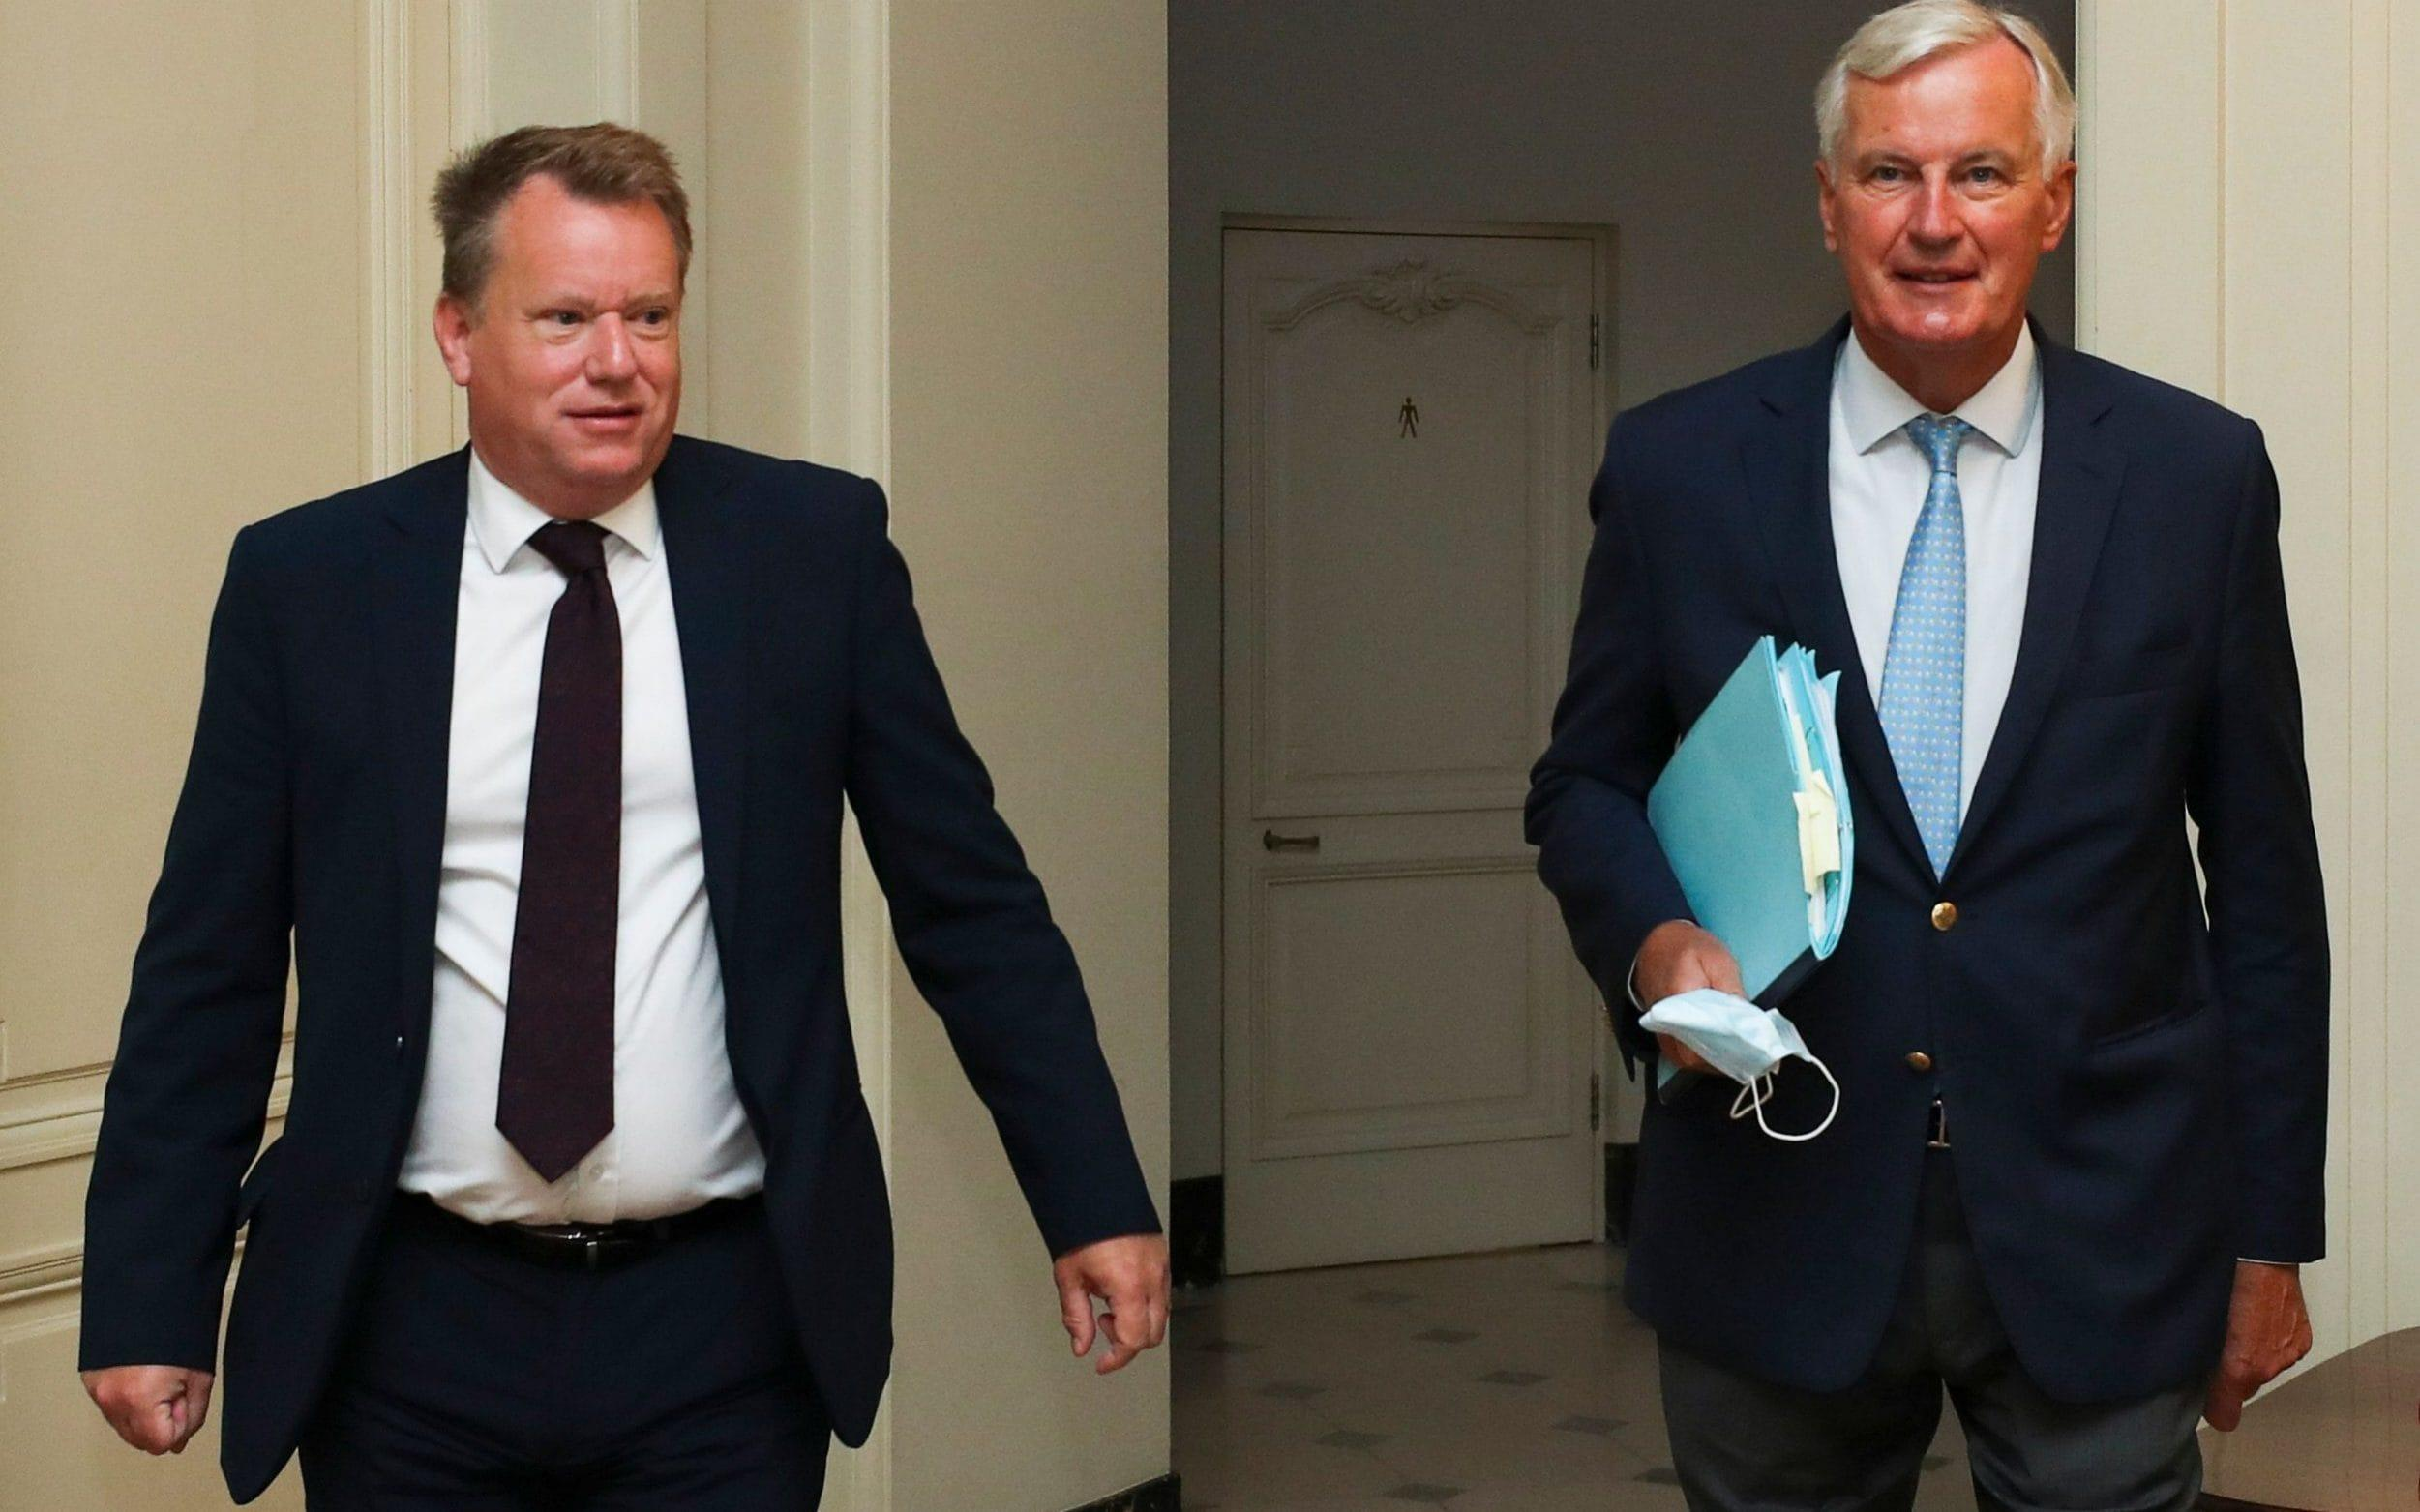 How state aid could derail a Brexit deal